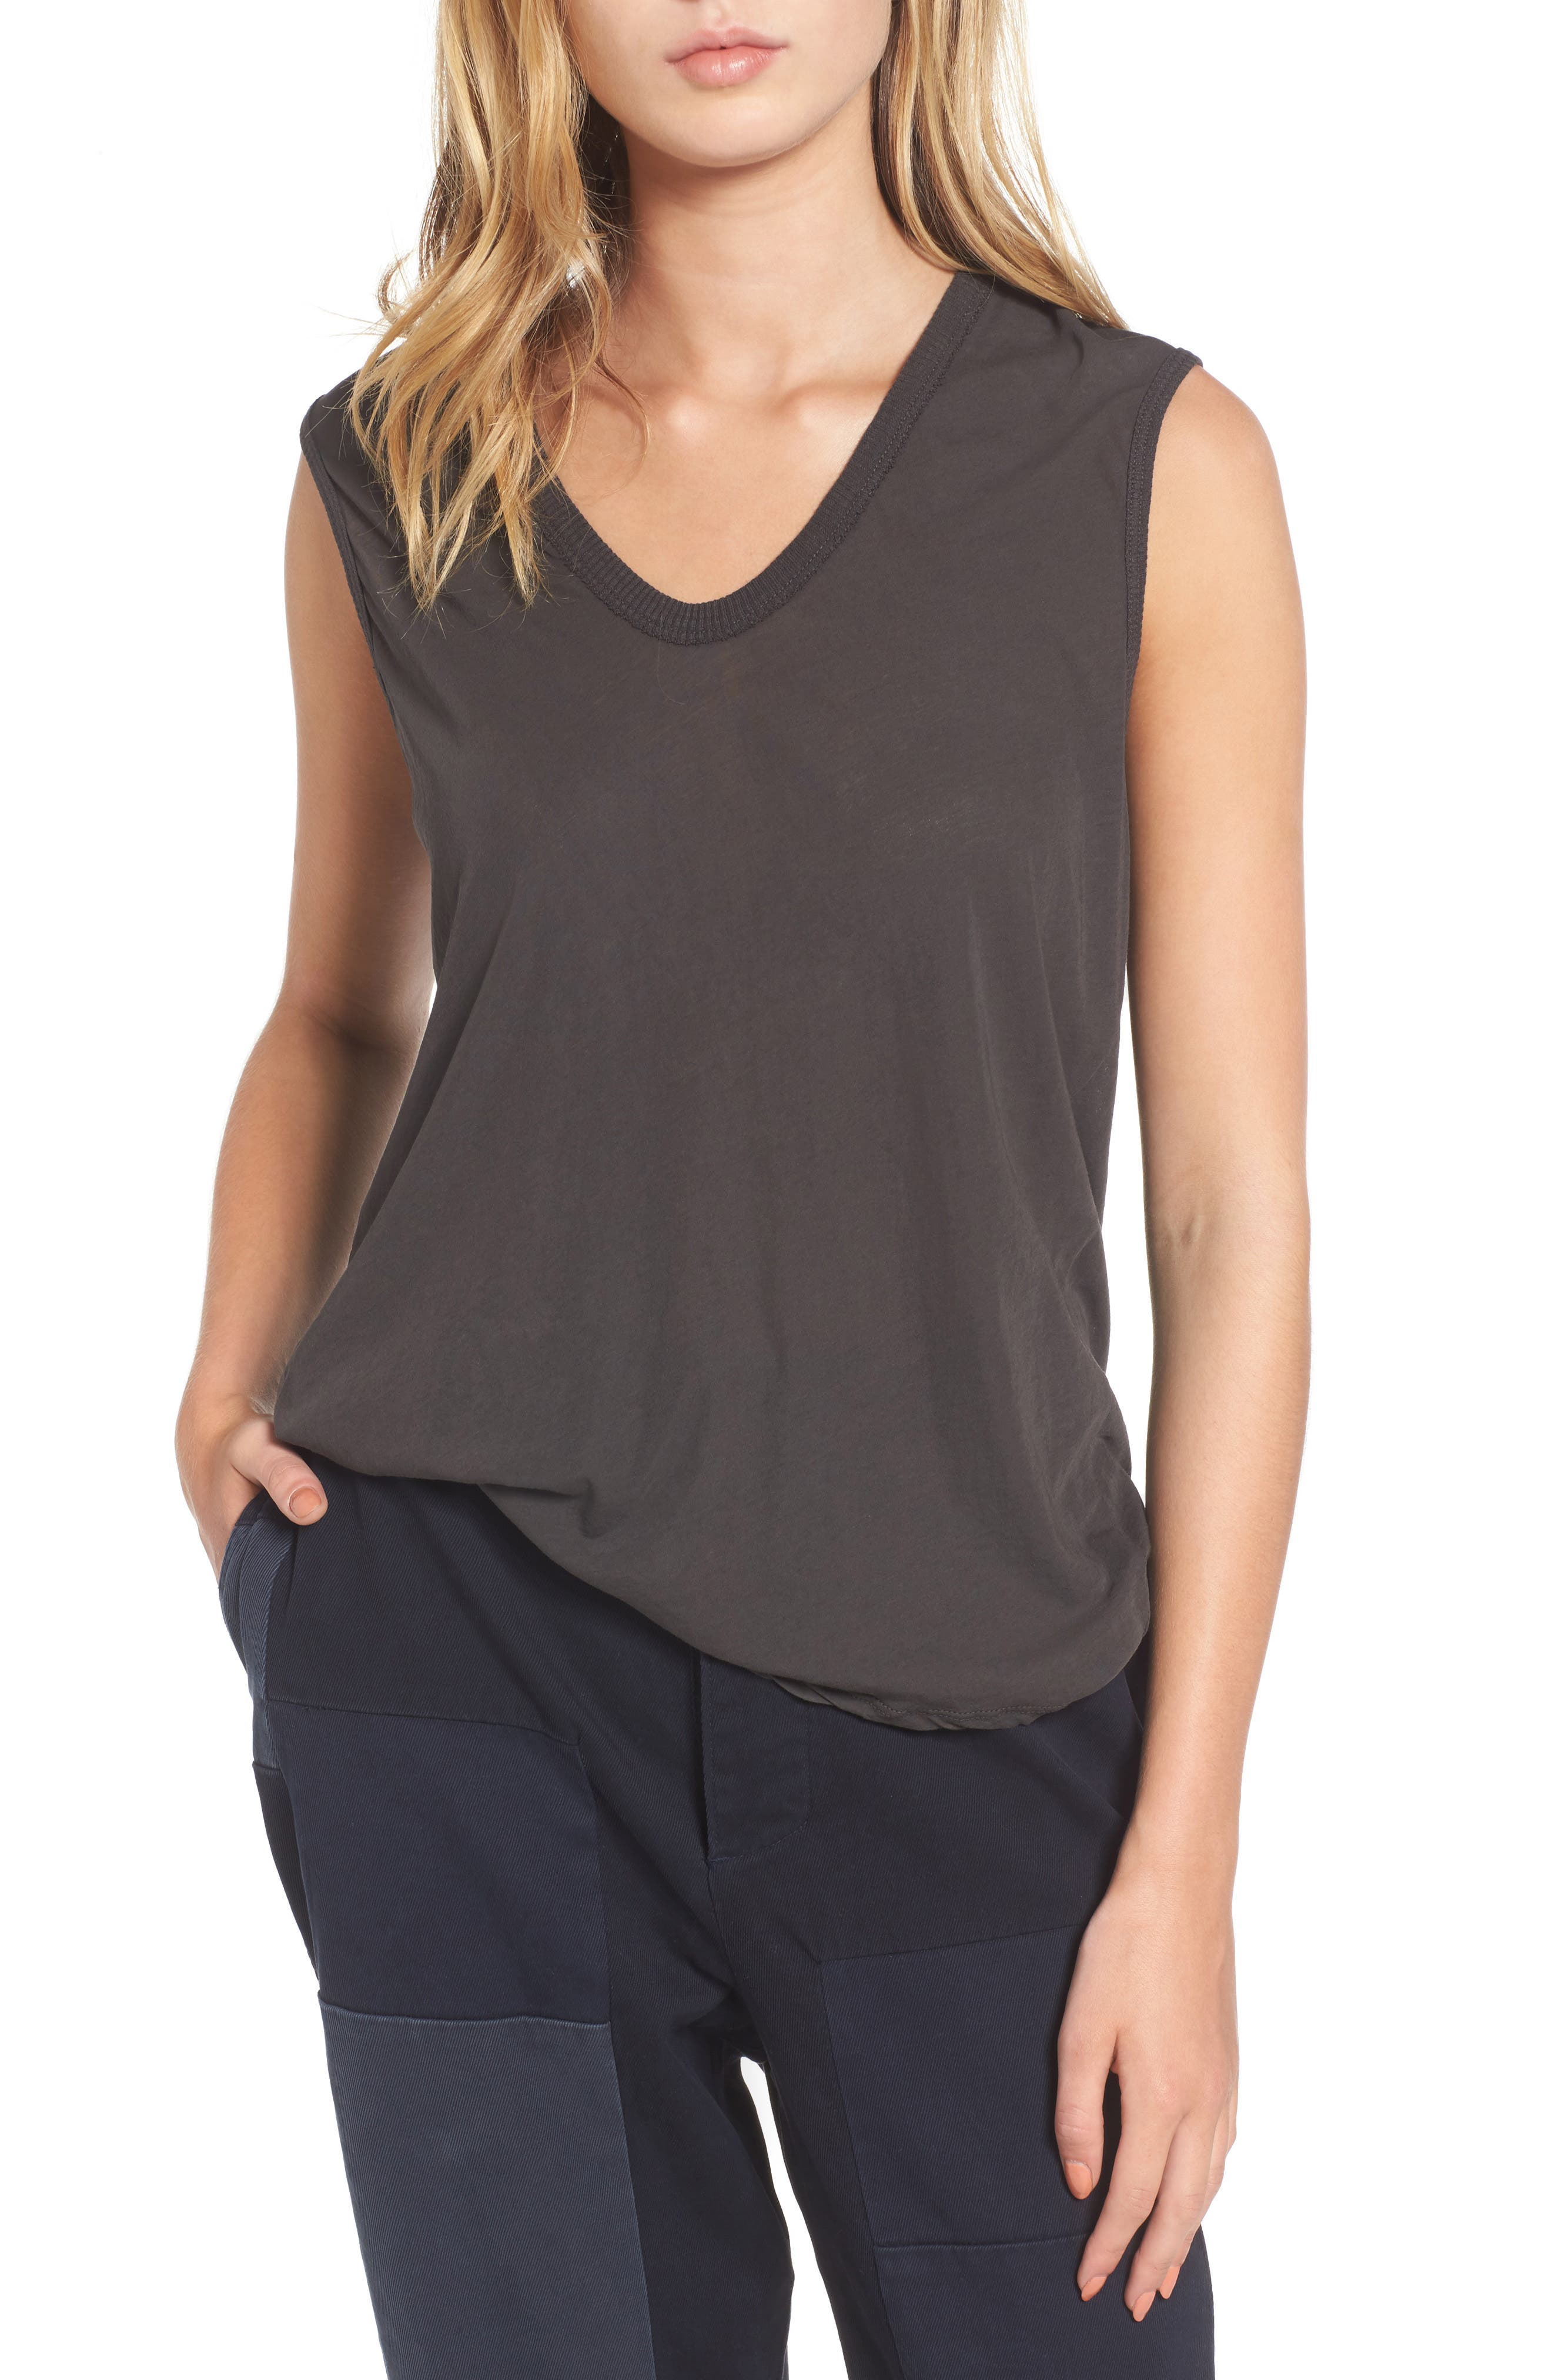 James Perse Muscle Tank